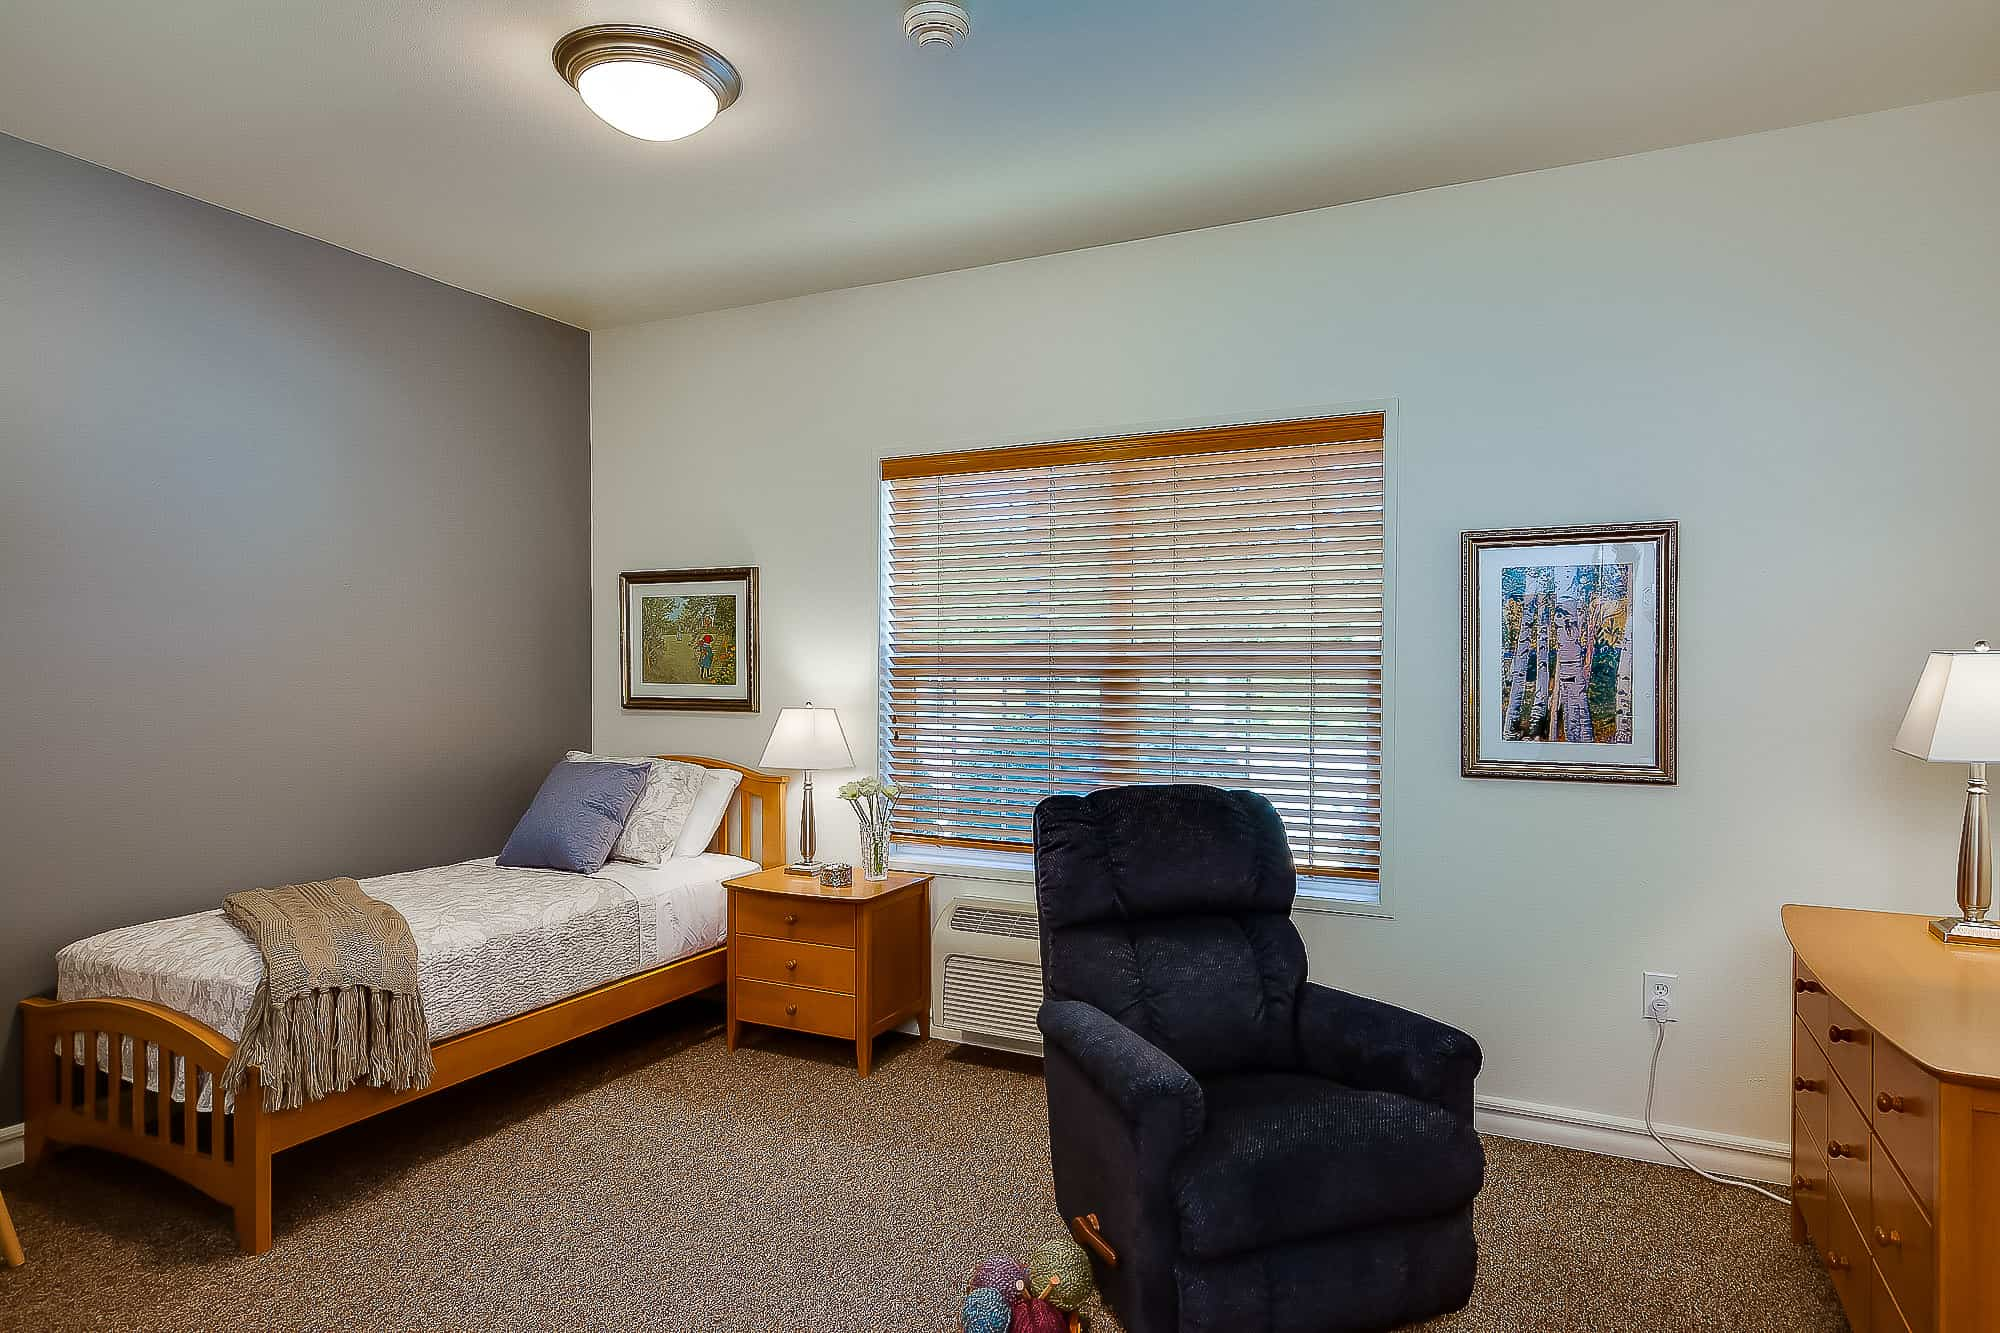 Furnished Bedroom at Mennonite Village